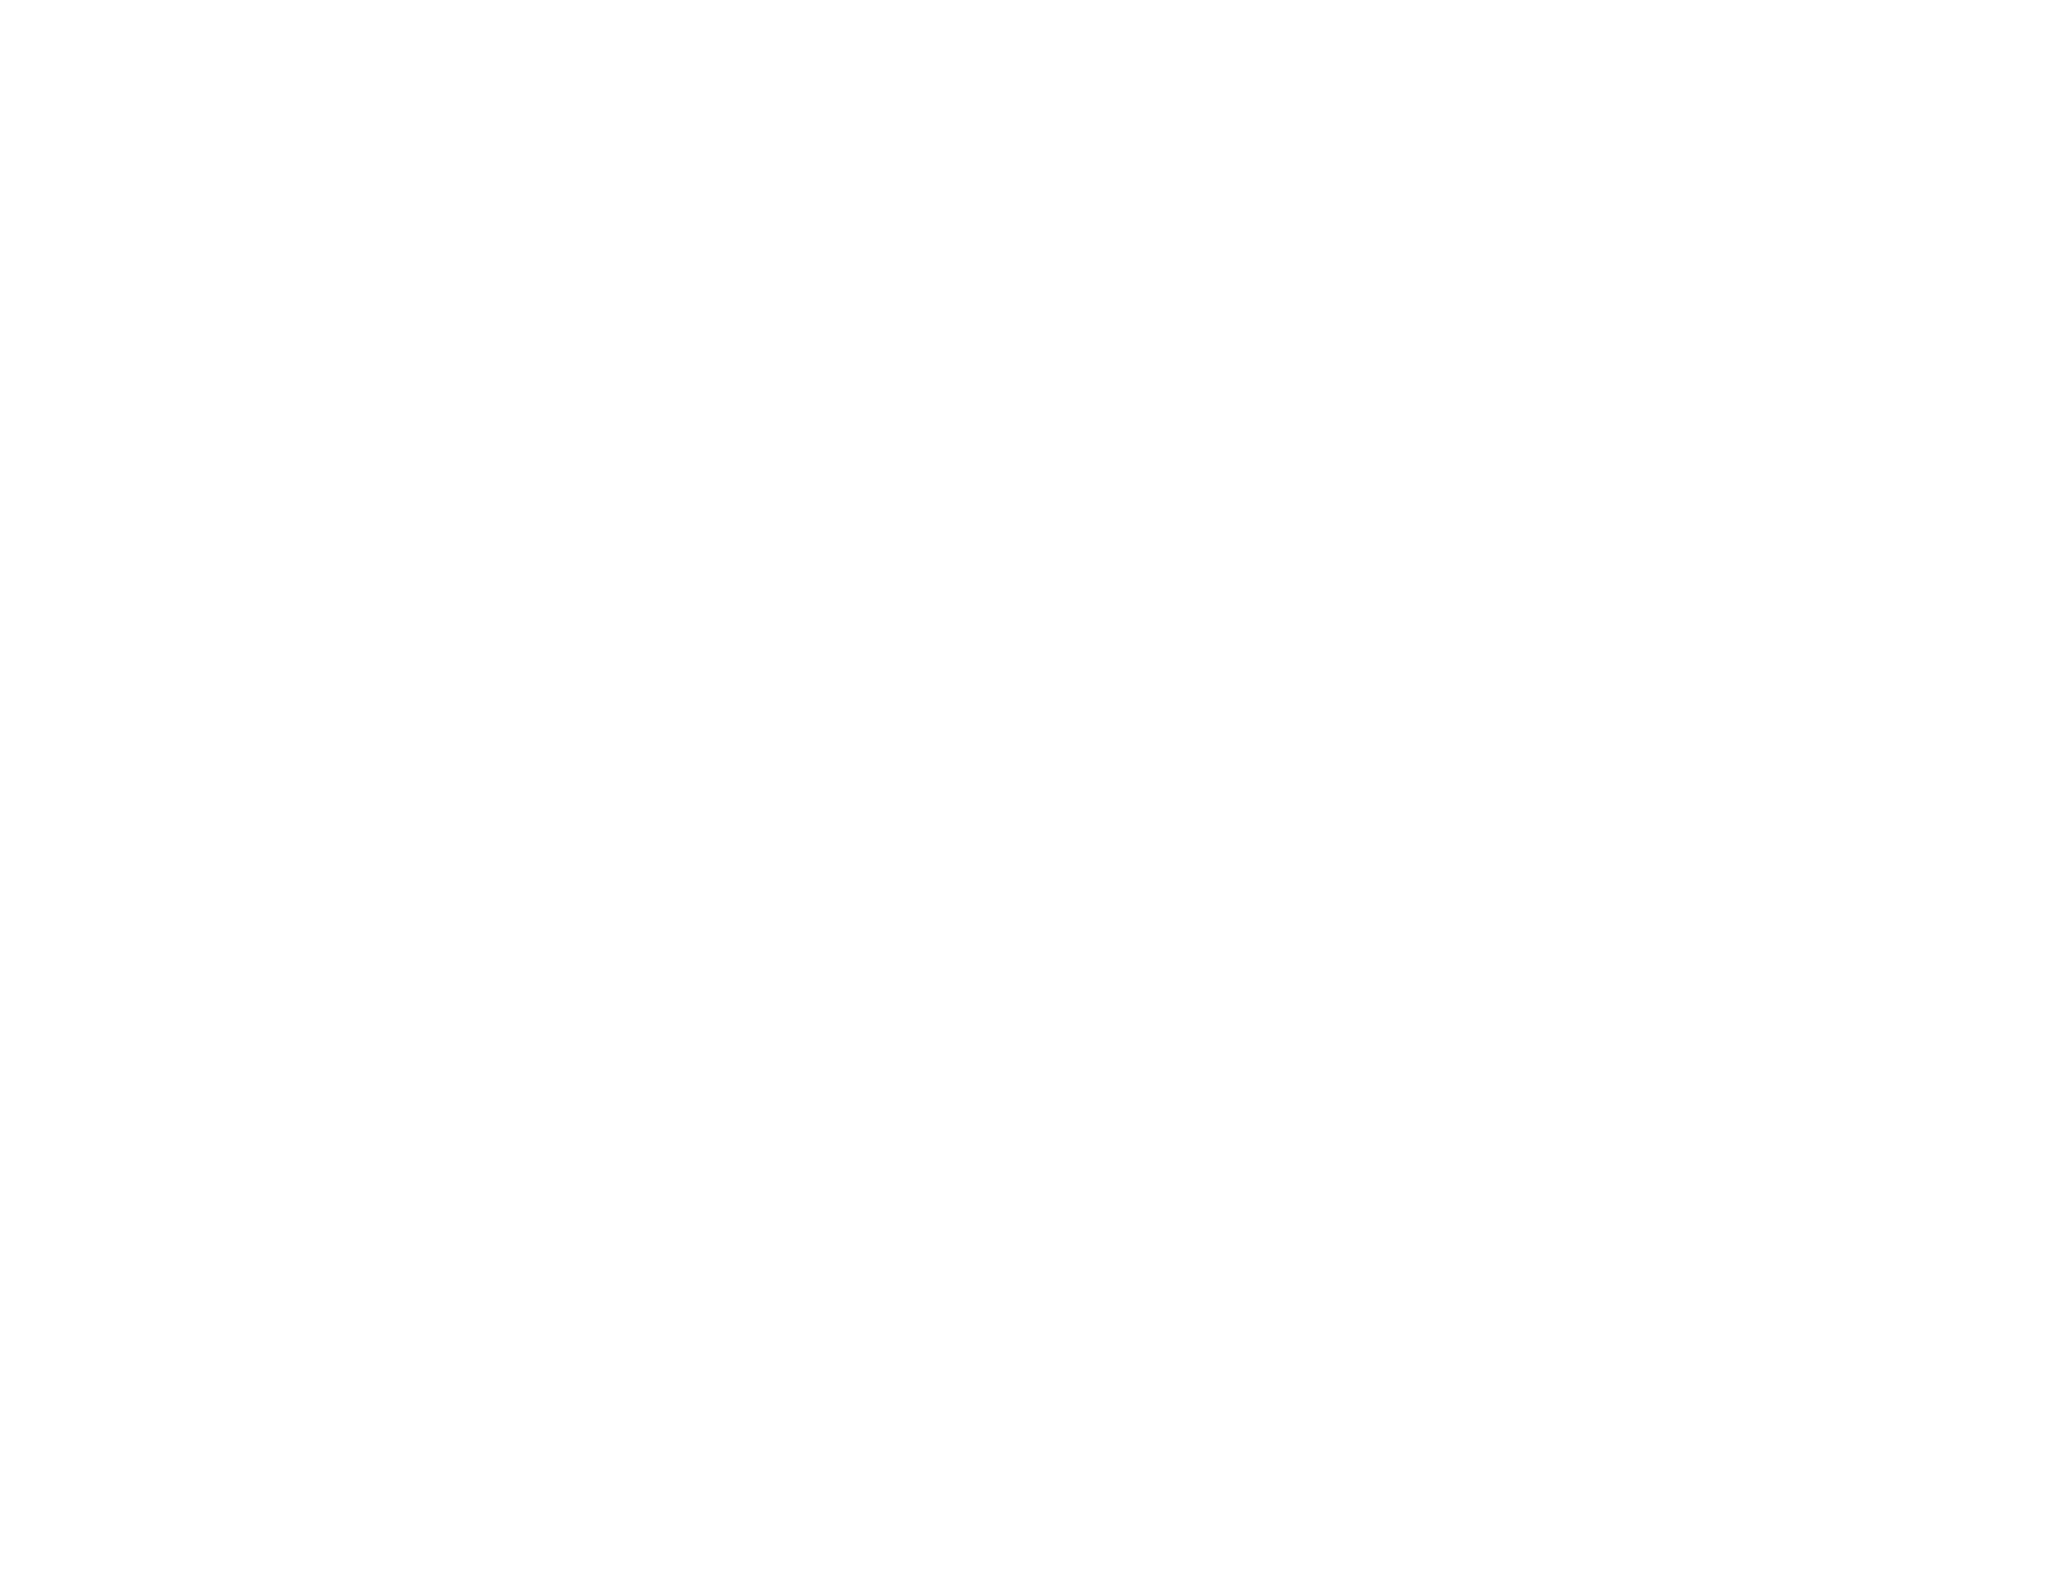 Steudle Hospitality & More Logo